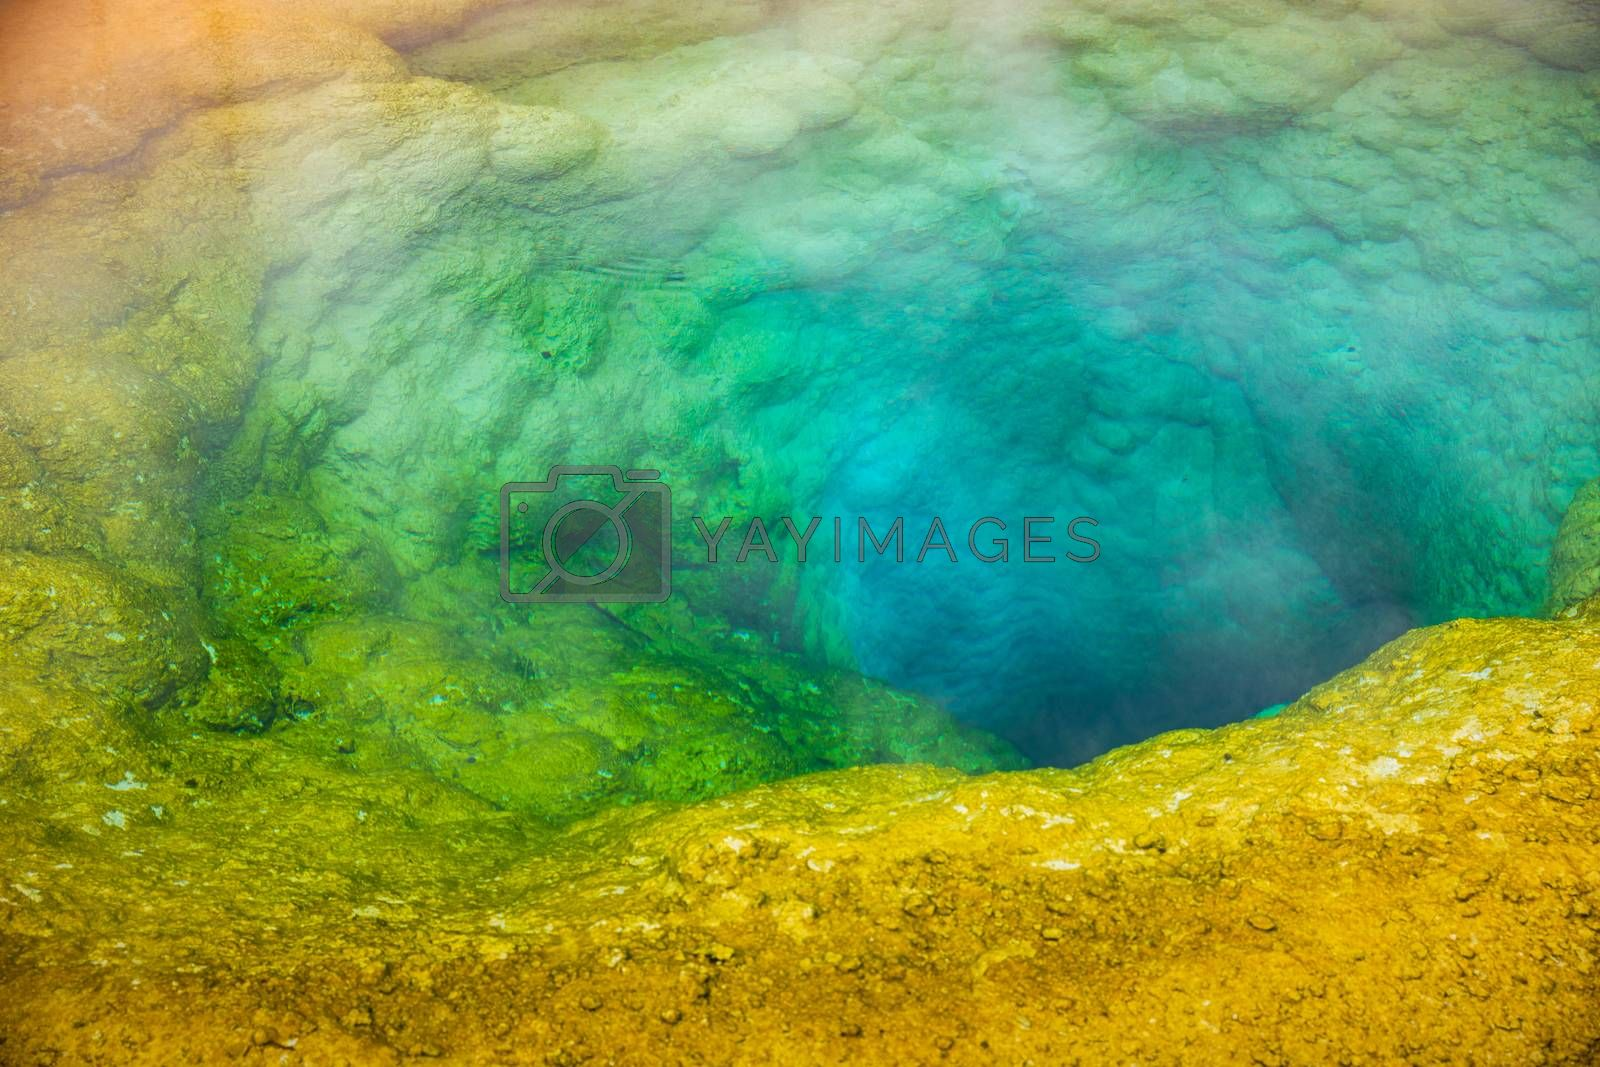 Colorful deep geyser basin with boiling water from geothermal heat, Morning Glory, Yellowstone National Park, Wyoming, USA. Colors of basin depending on temperature and kind of bacteria inside.